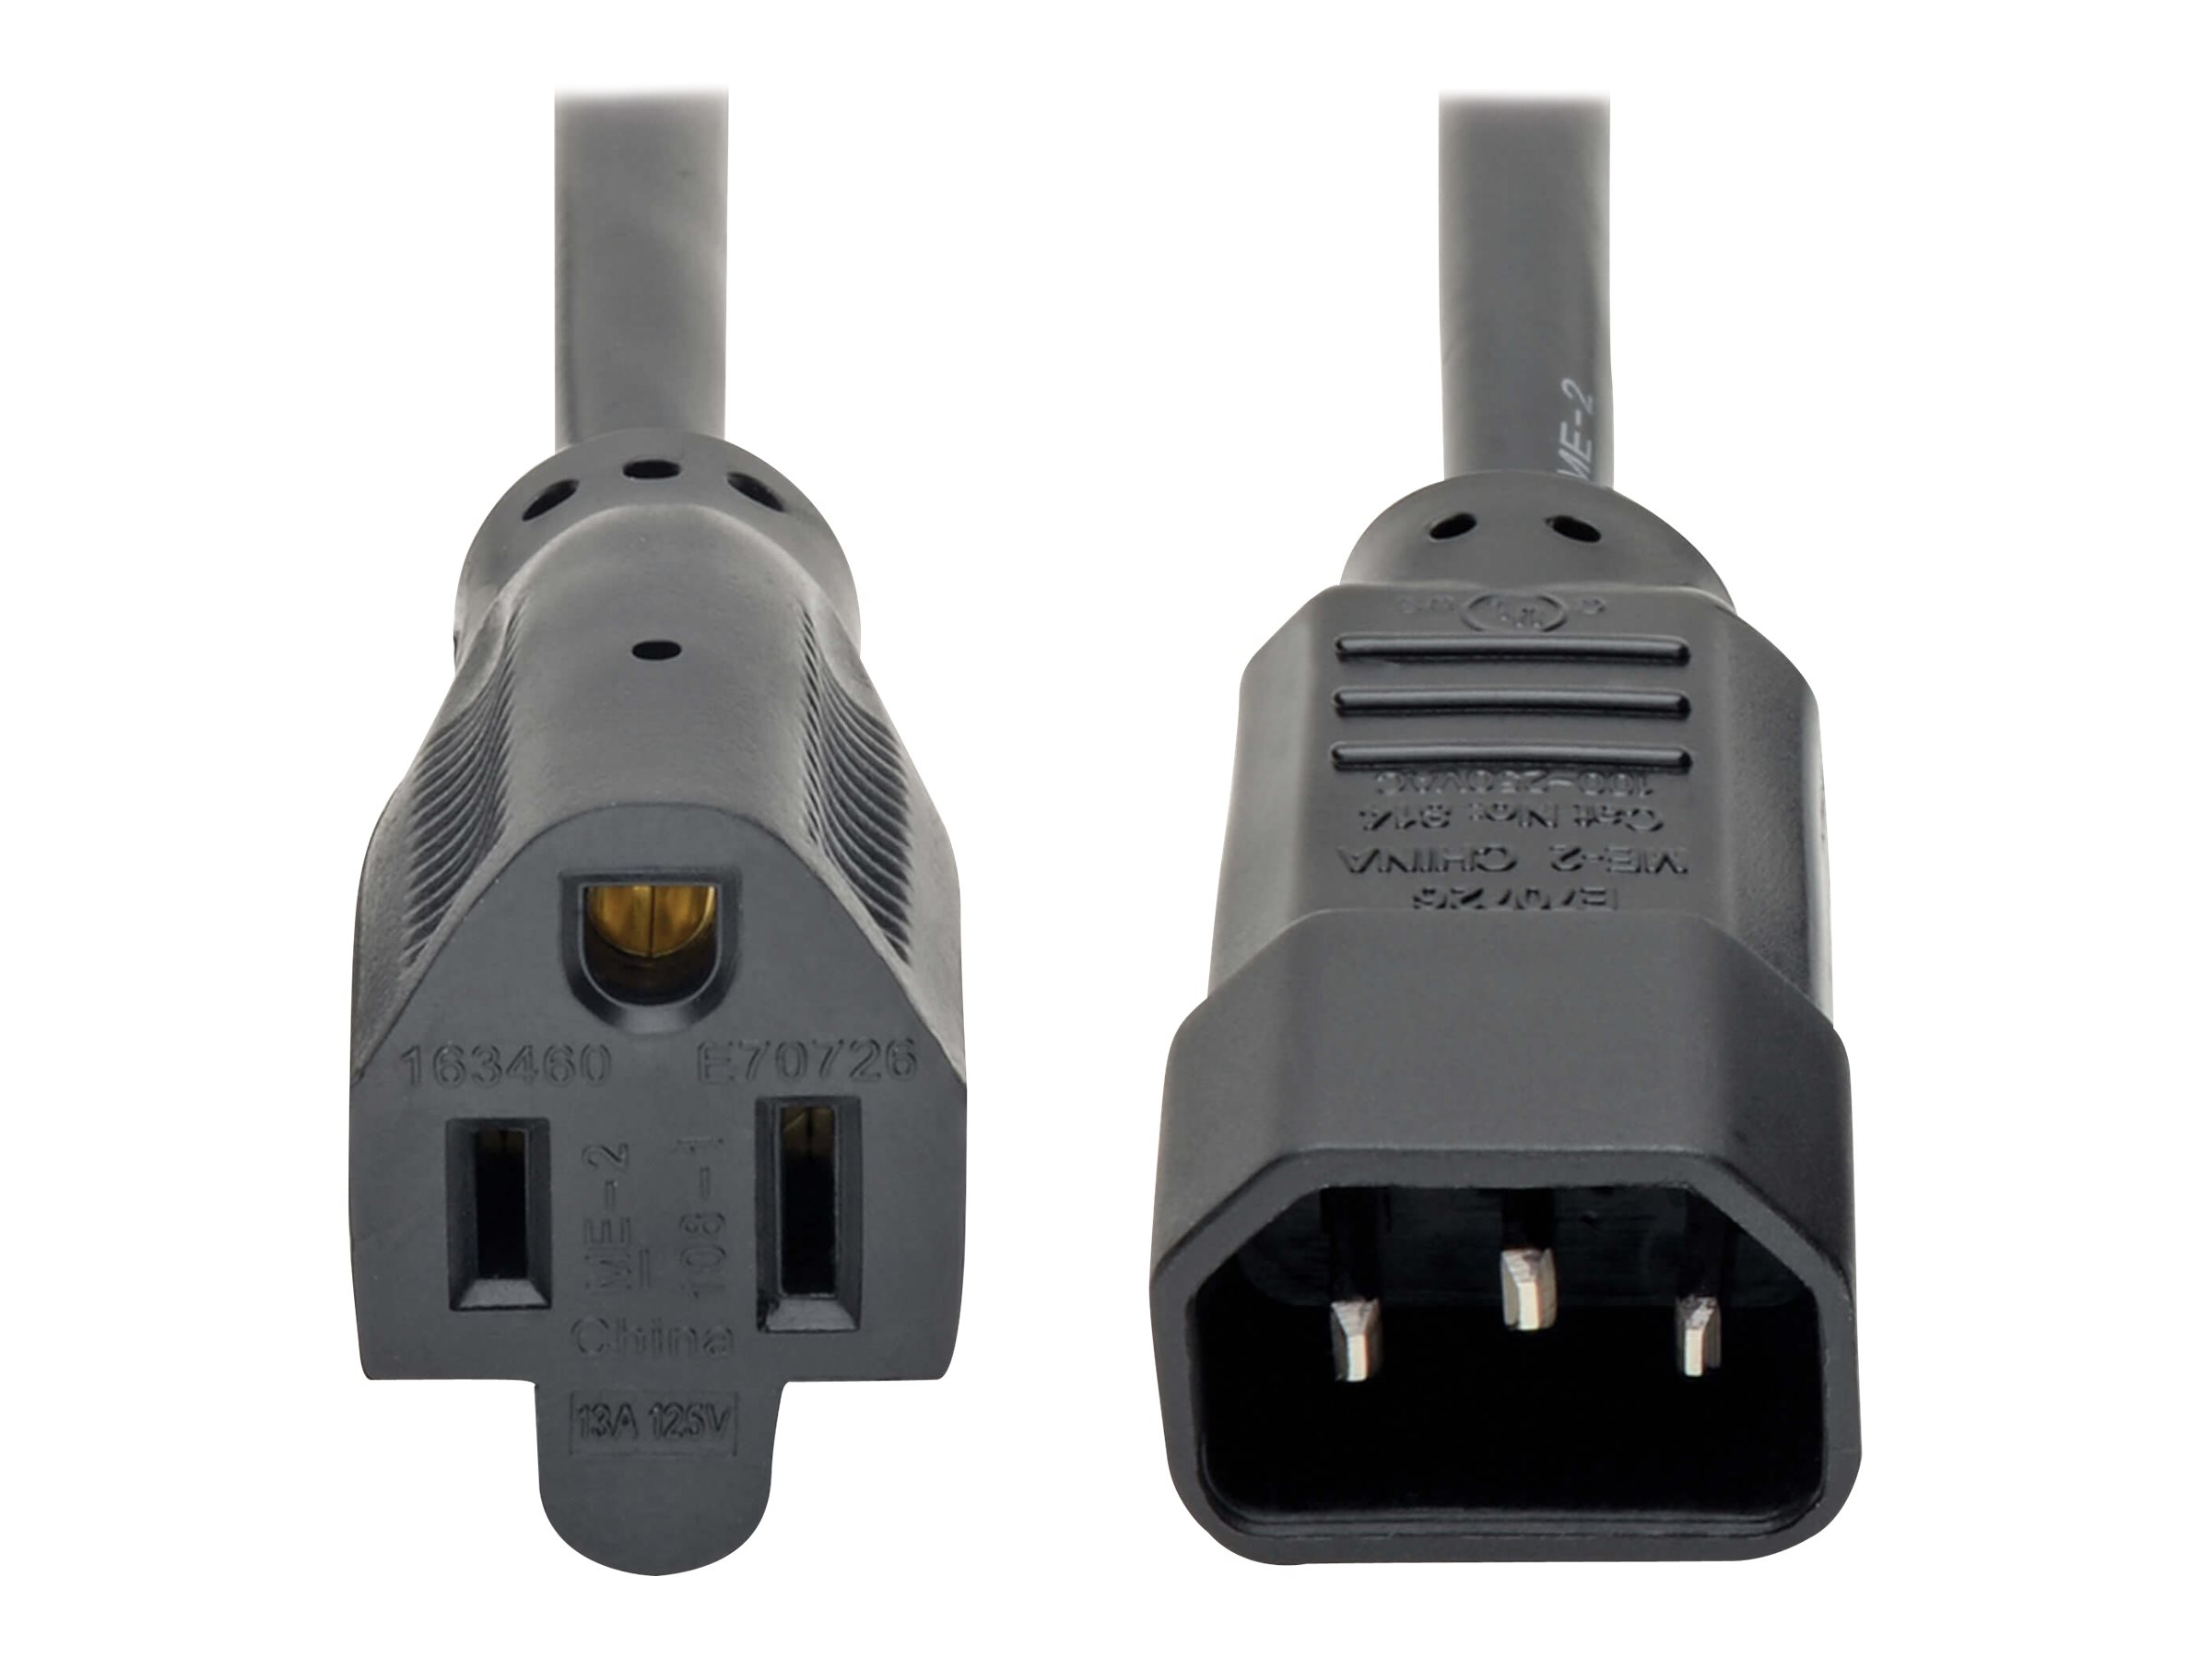 Tripp Lite Standard Computer Power Cord 12A 16AWG C14 to 5-15R - power cable - 61 cm